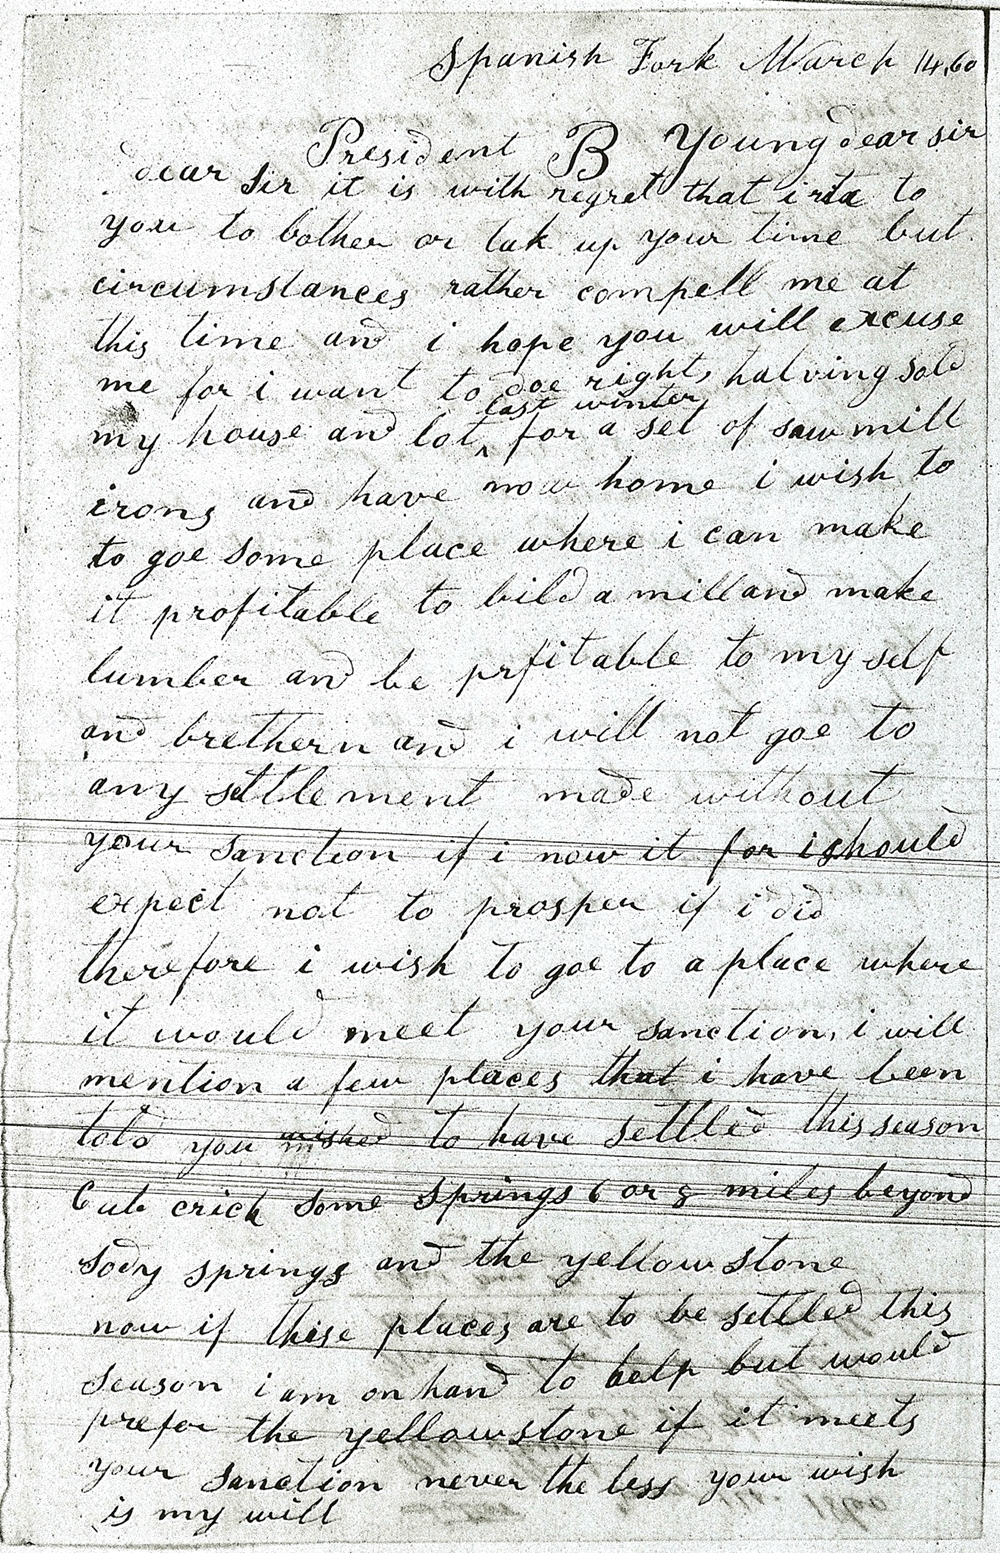 Peter Shirts Letter to Brigham Young requesting relocation of Spanish Fork saw mill